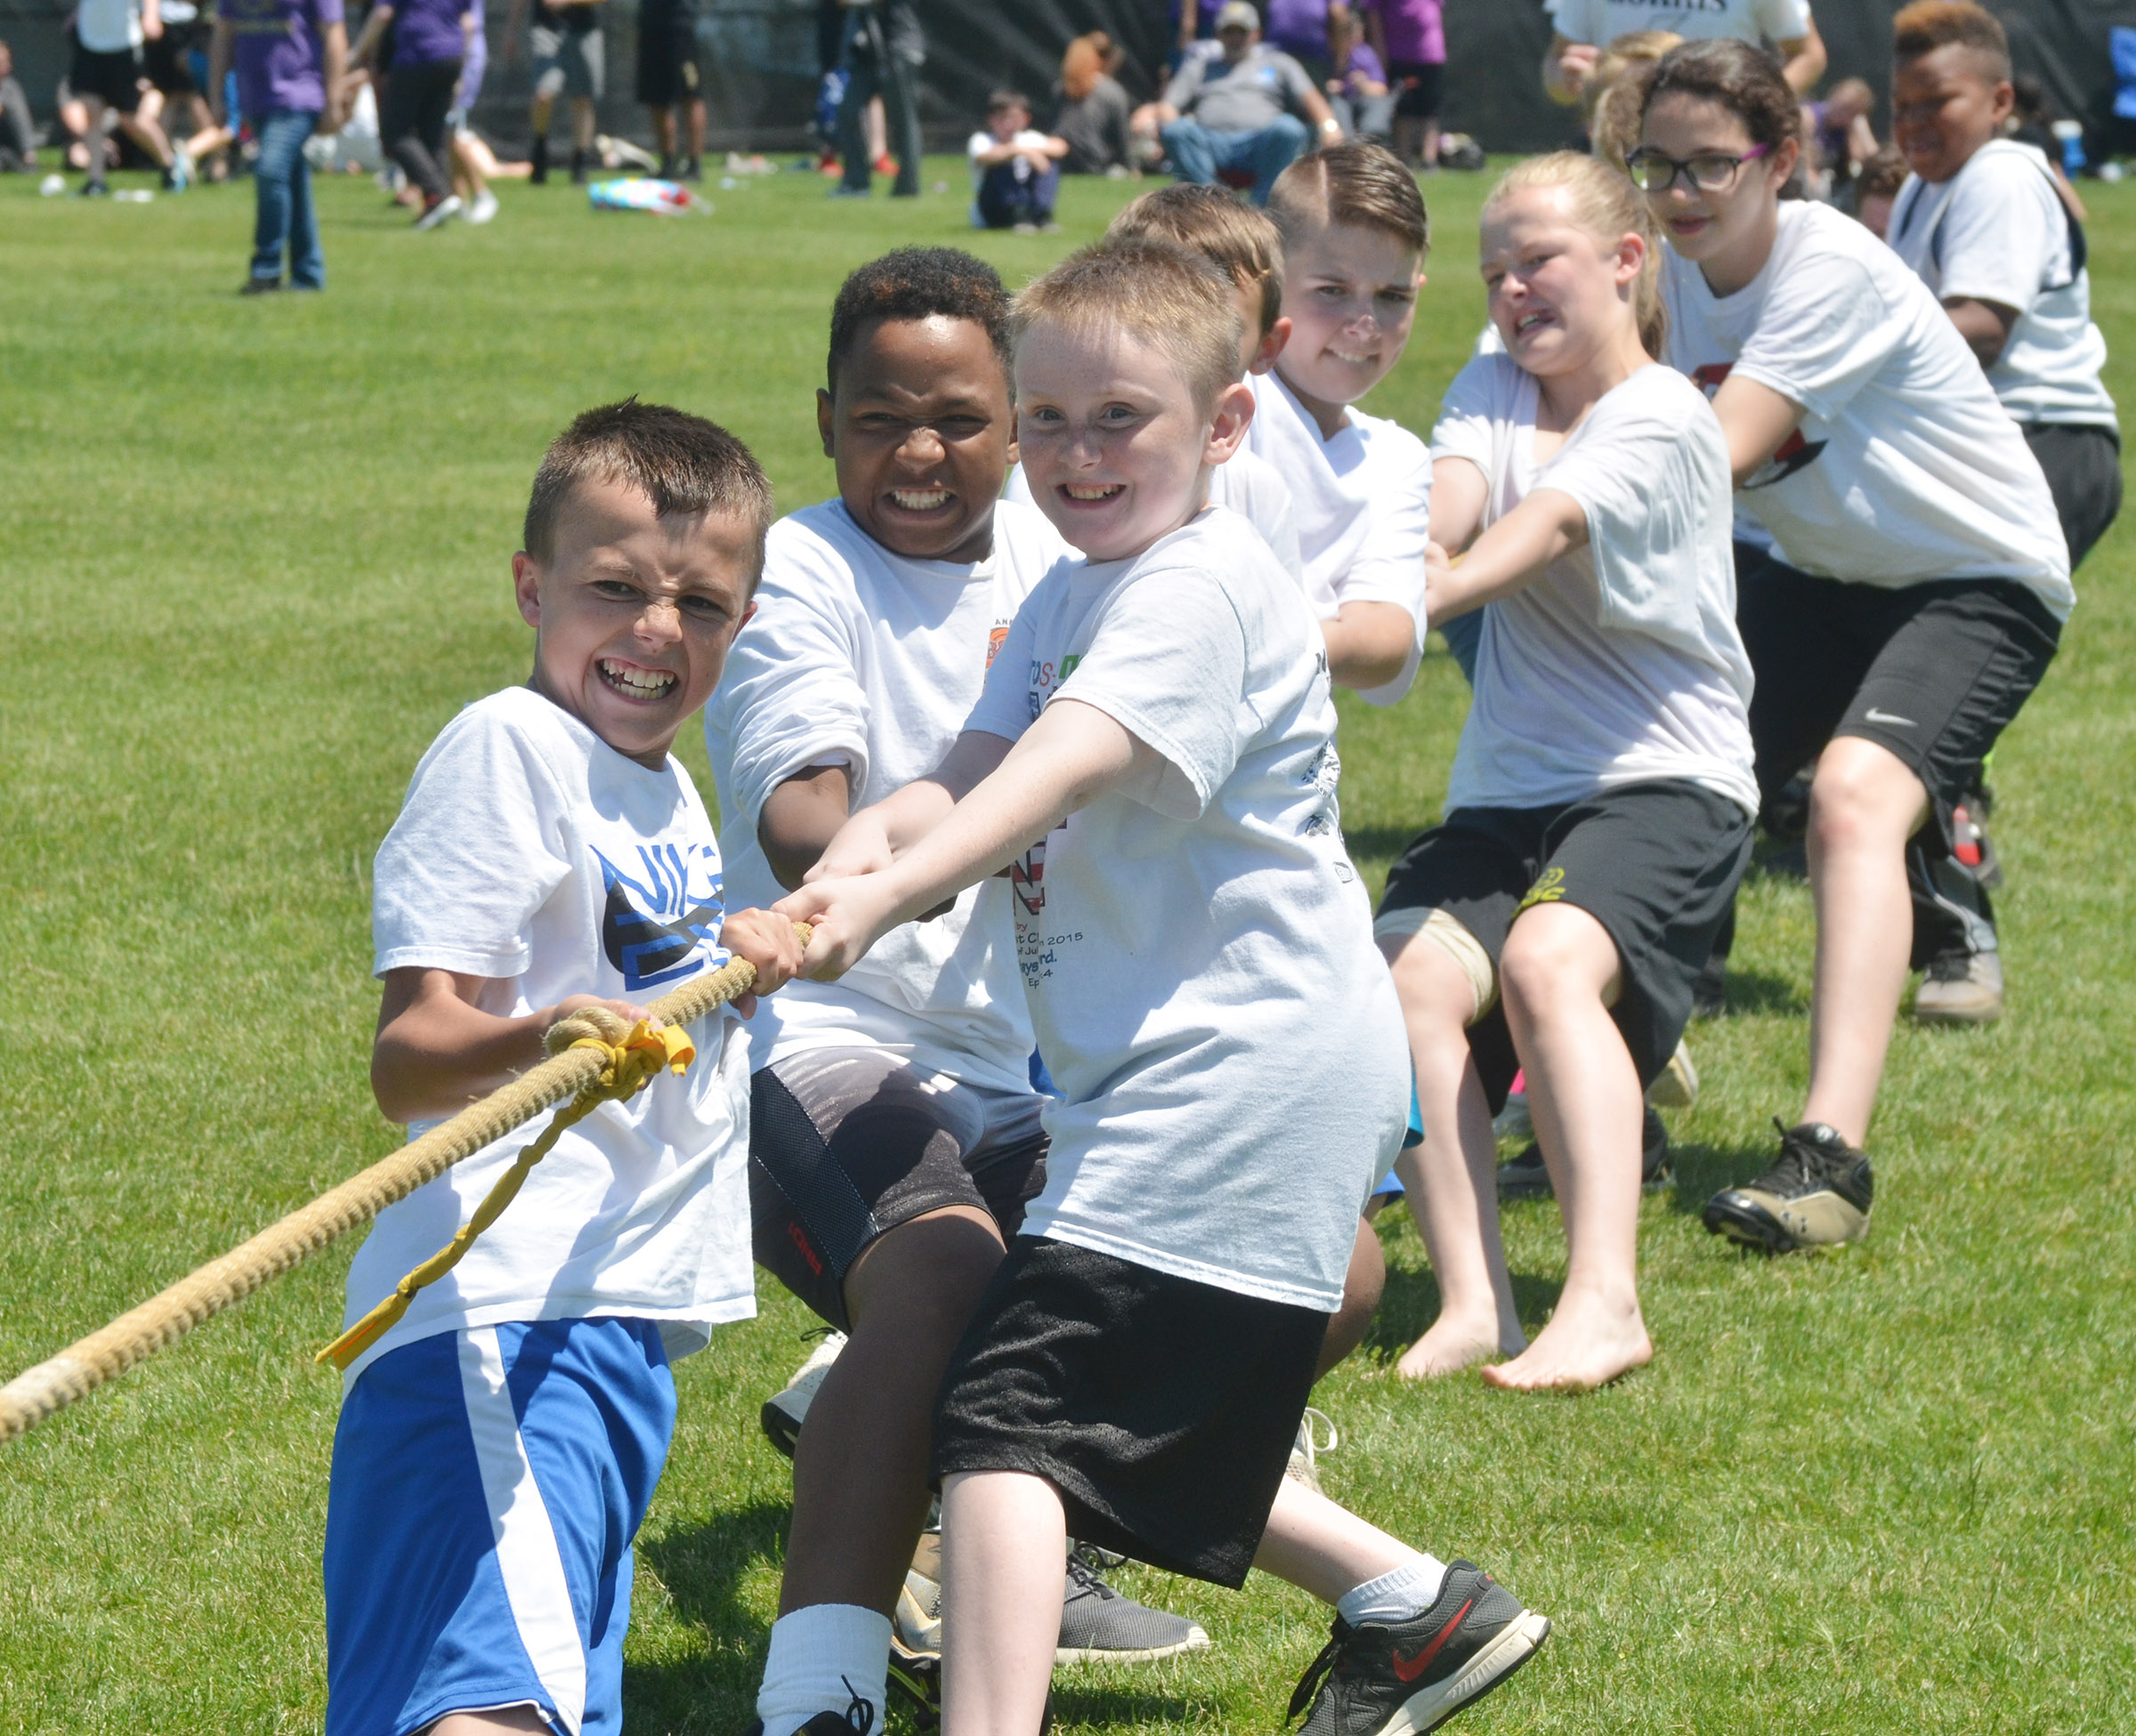 From left, CMS sixth-graders Chase Hord, Deondre Weathers and Zavian McColley lead their classmates in a tug of war battle.